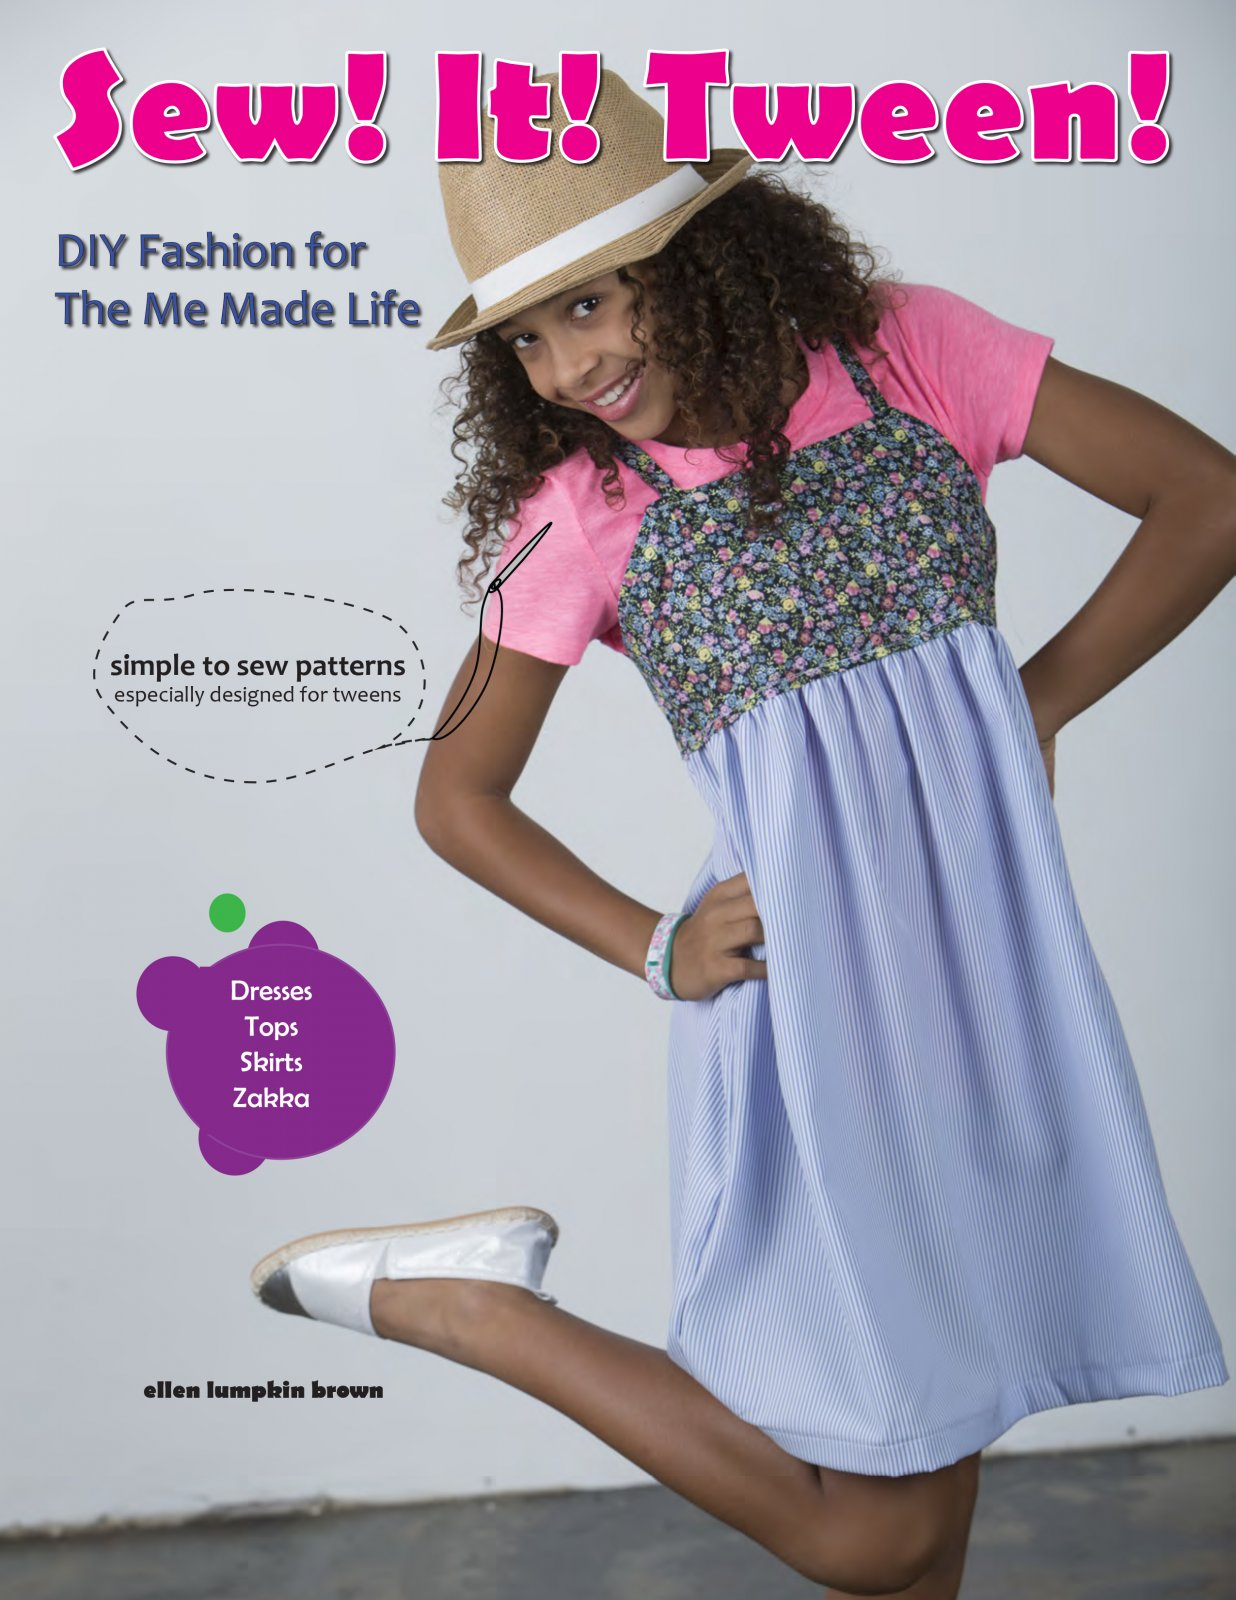 Sew It! Tween: DIY Fashion and Accessories for the 'Me' Made Life